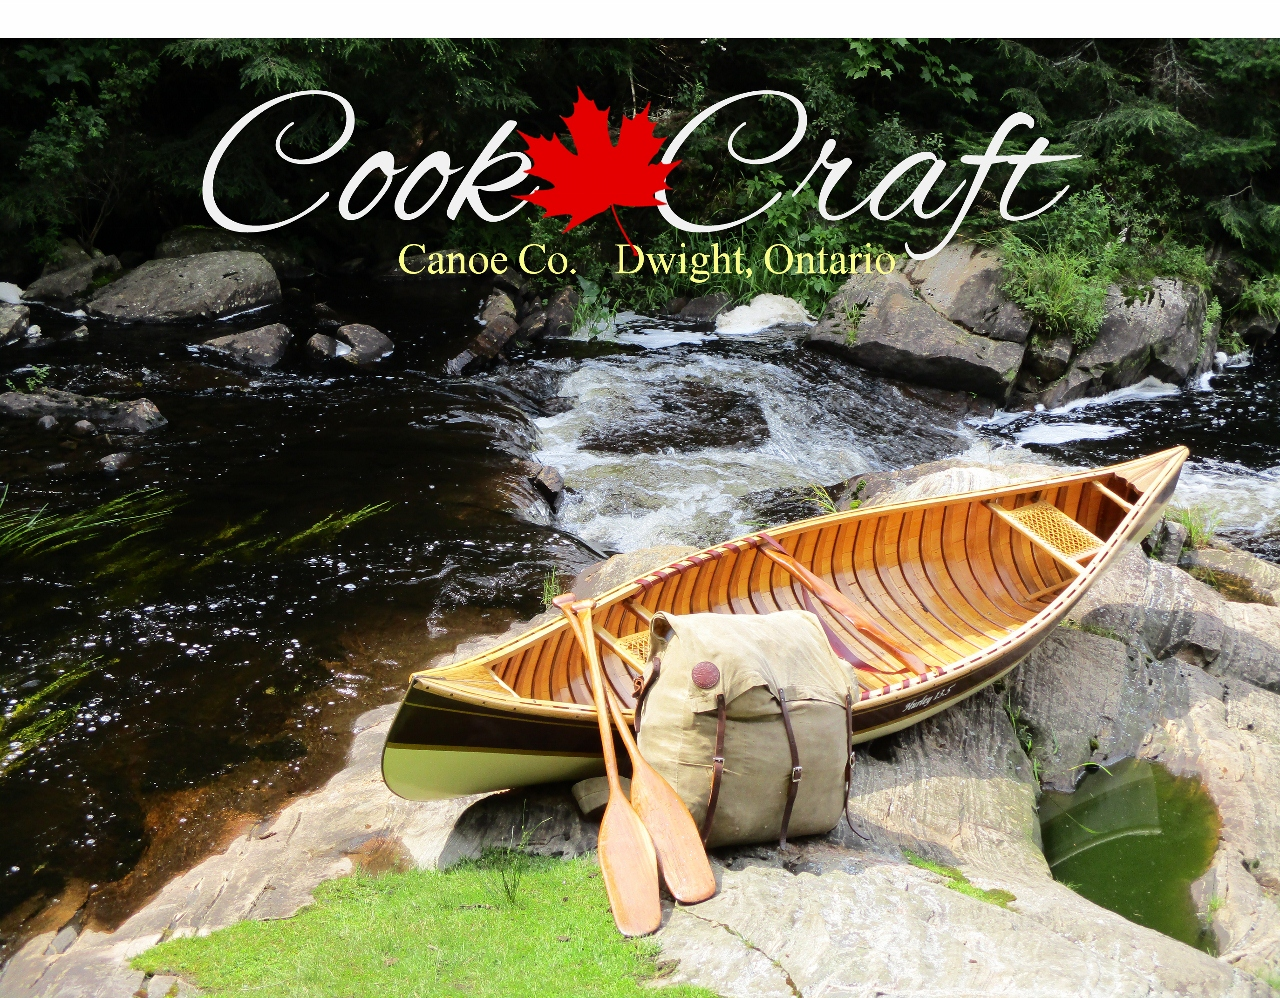 Cook Craft Canoes- Dwight, Ontario